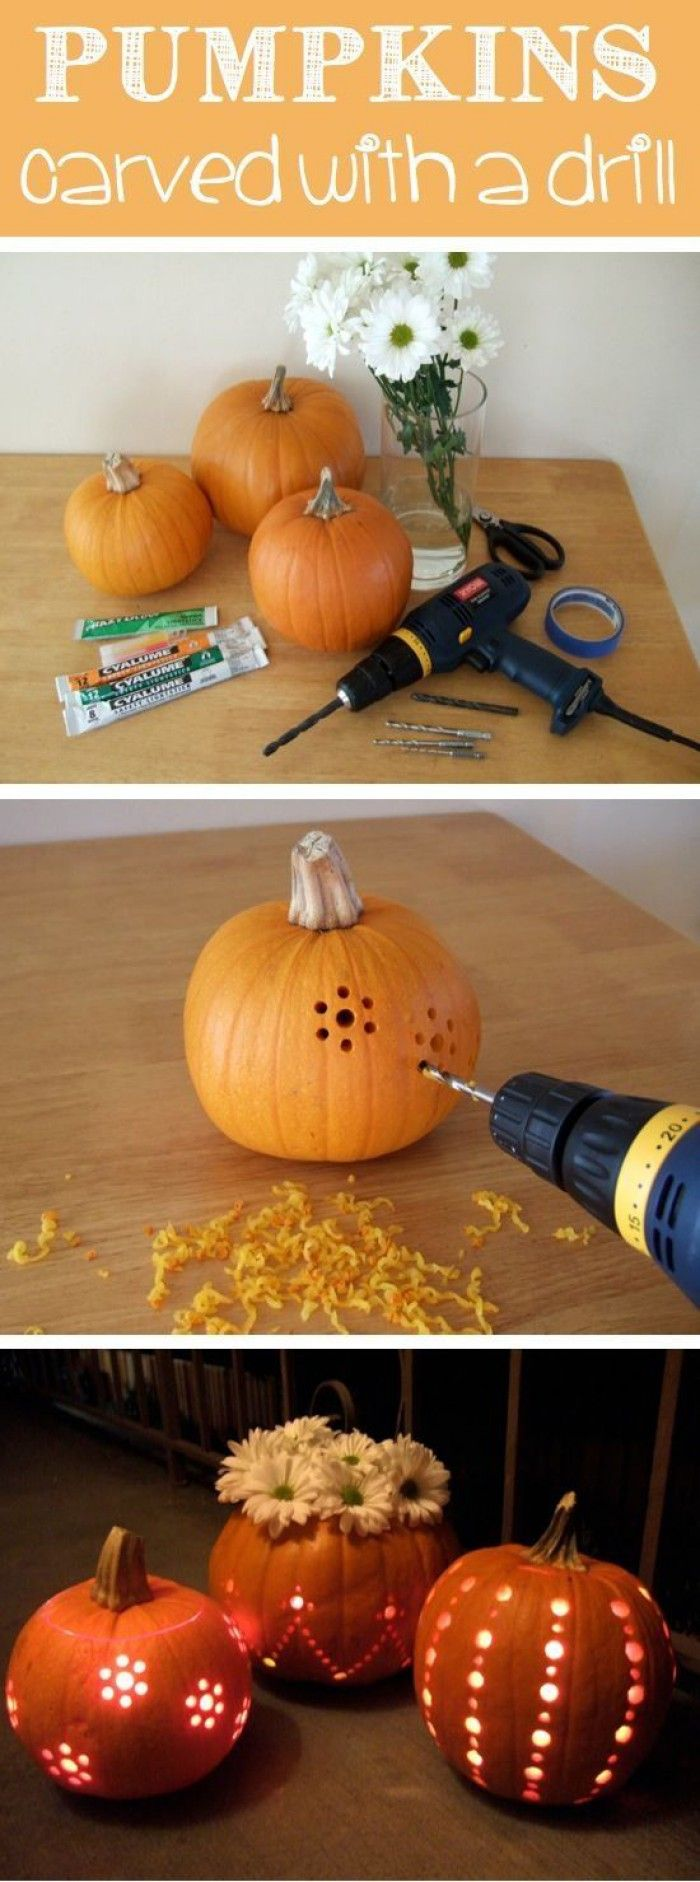 DIY Fall Decorations - Modern Magazin - Art, design, DIY projects, architecture, fashion, food and drinks